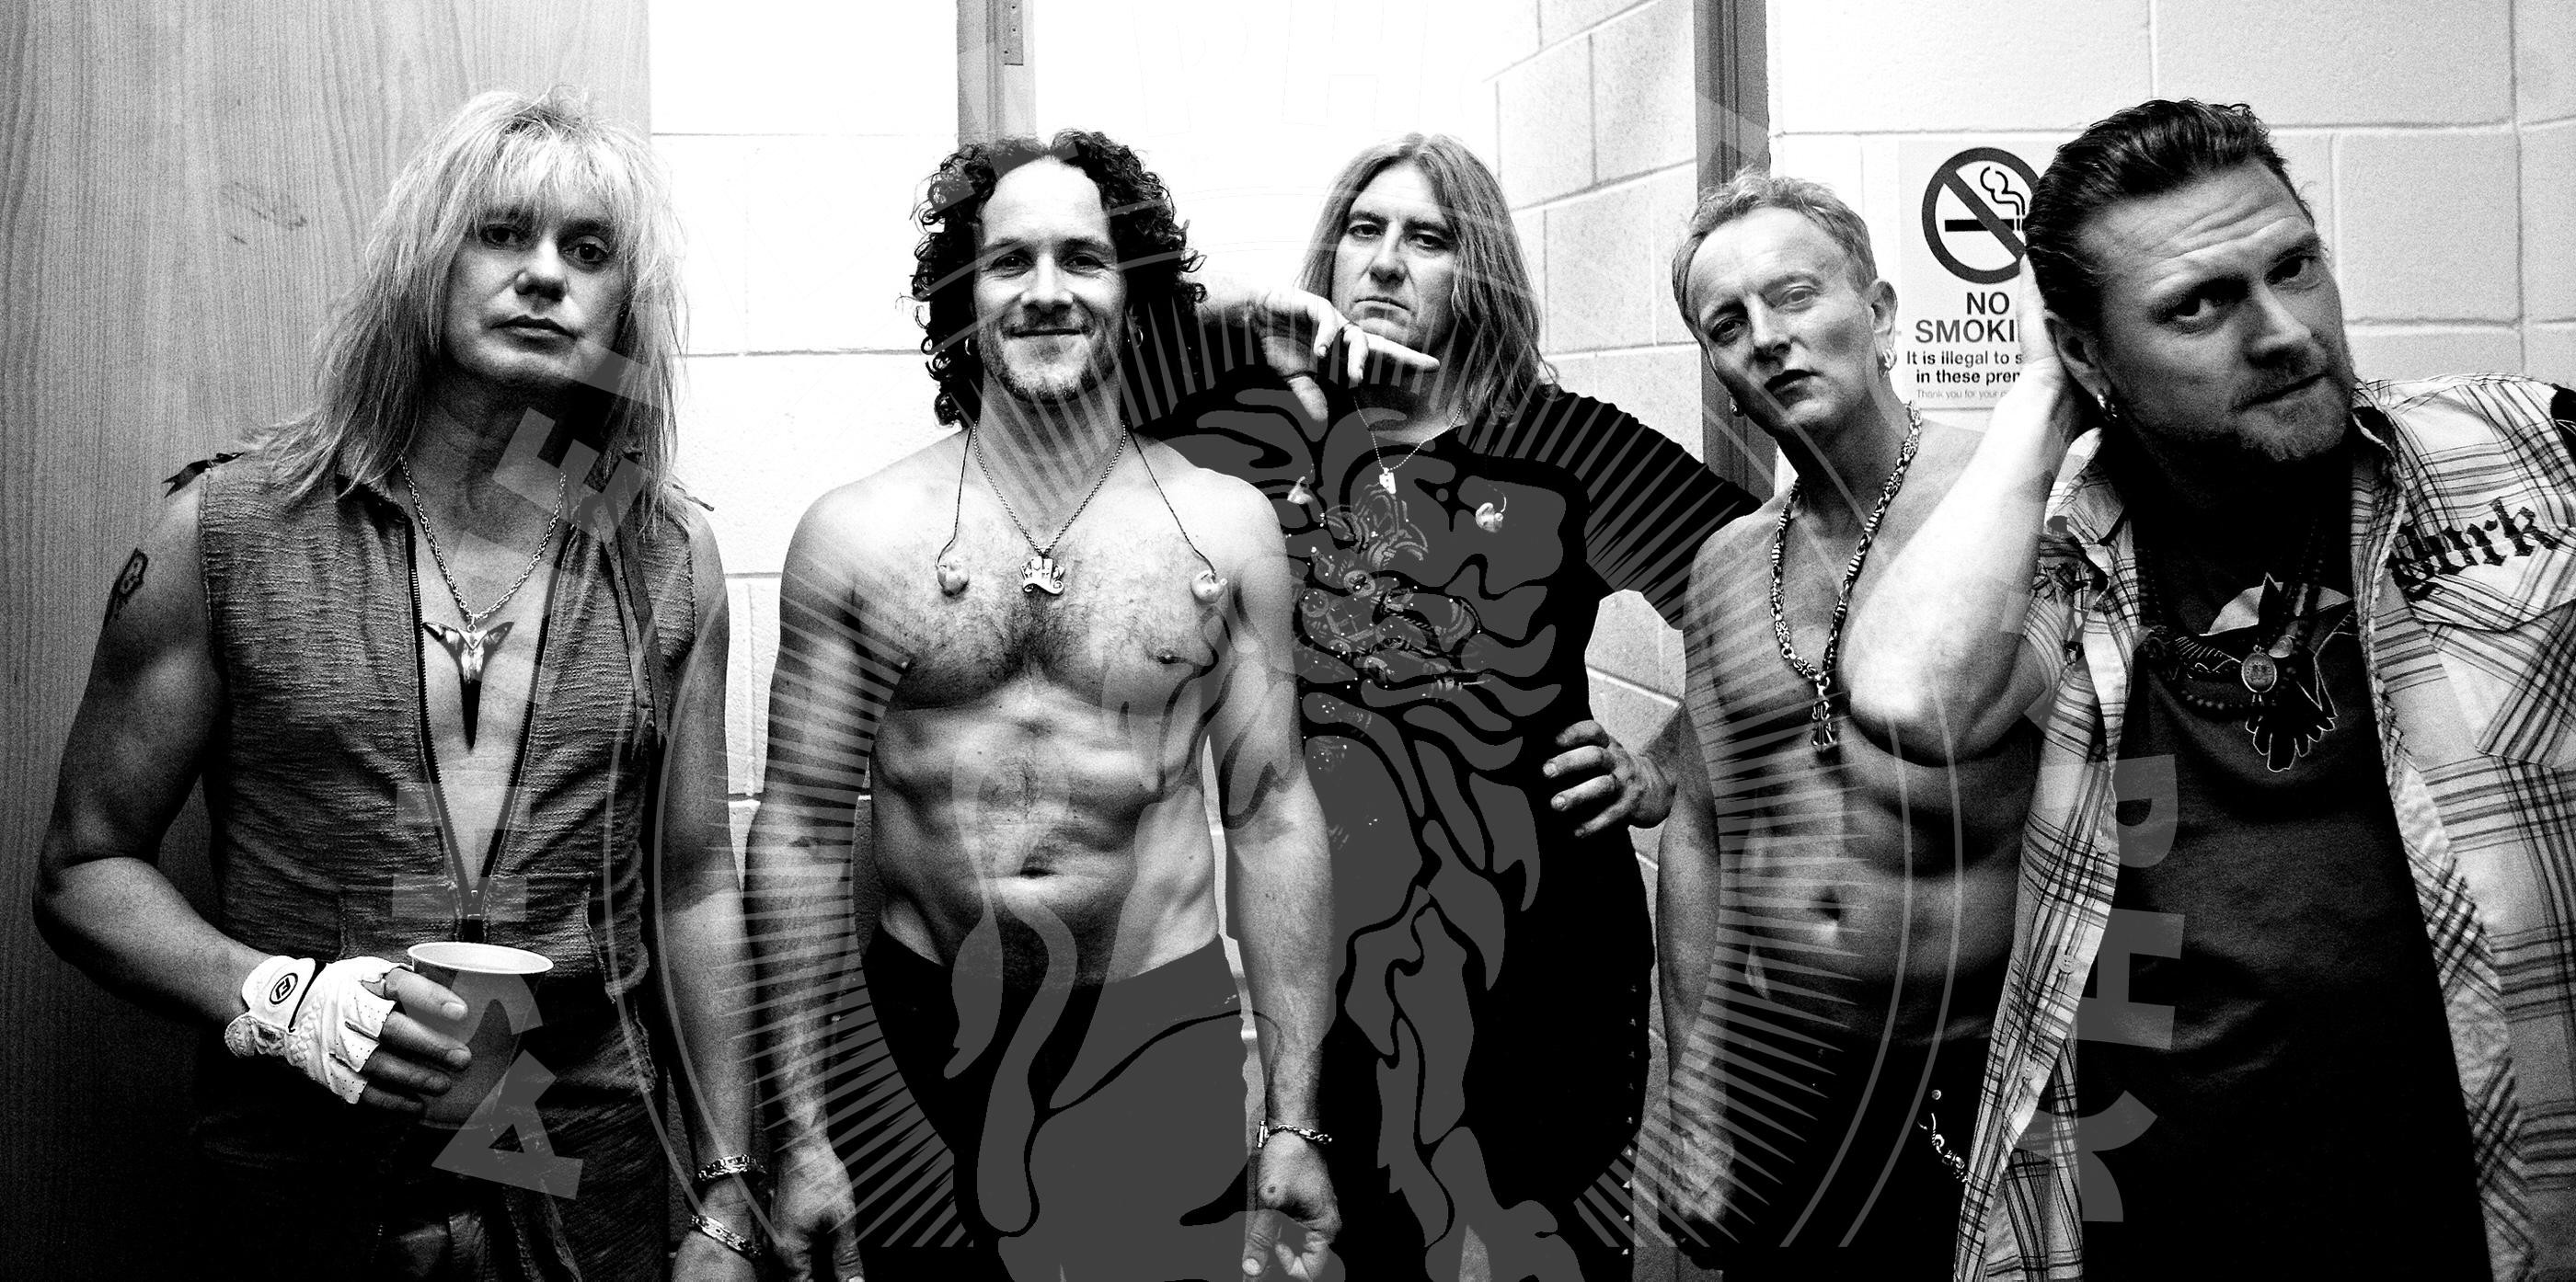 Res: 2800x1394, Def Leppard High Quality Background on Walls Cover